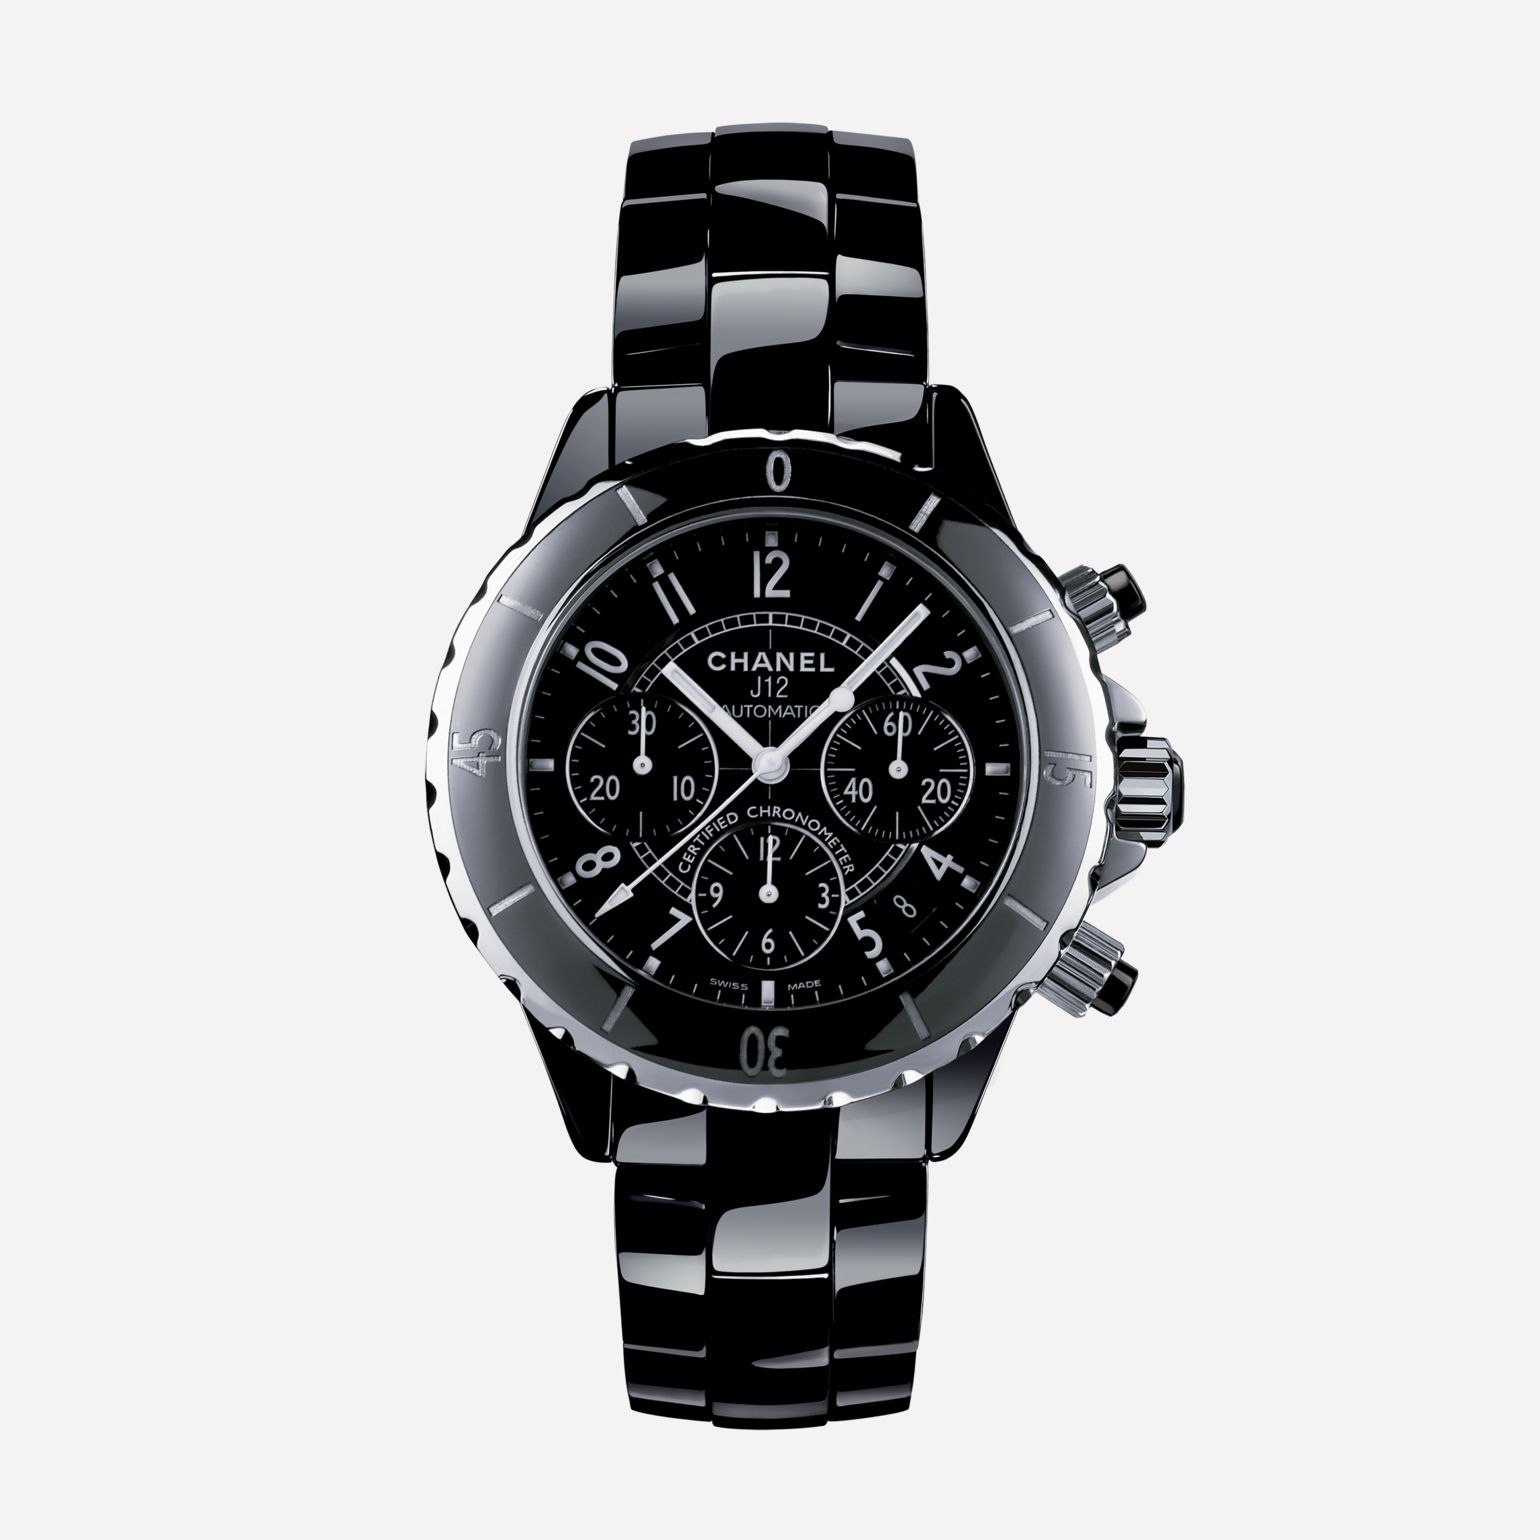 J12 Chronograph Watch, 41 mm Black highly-resistant ceramic and steel